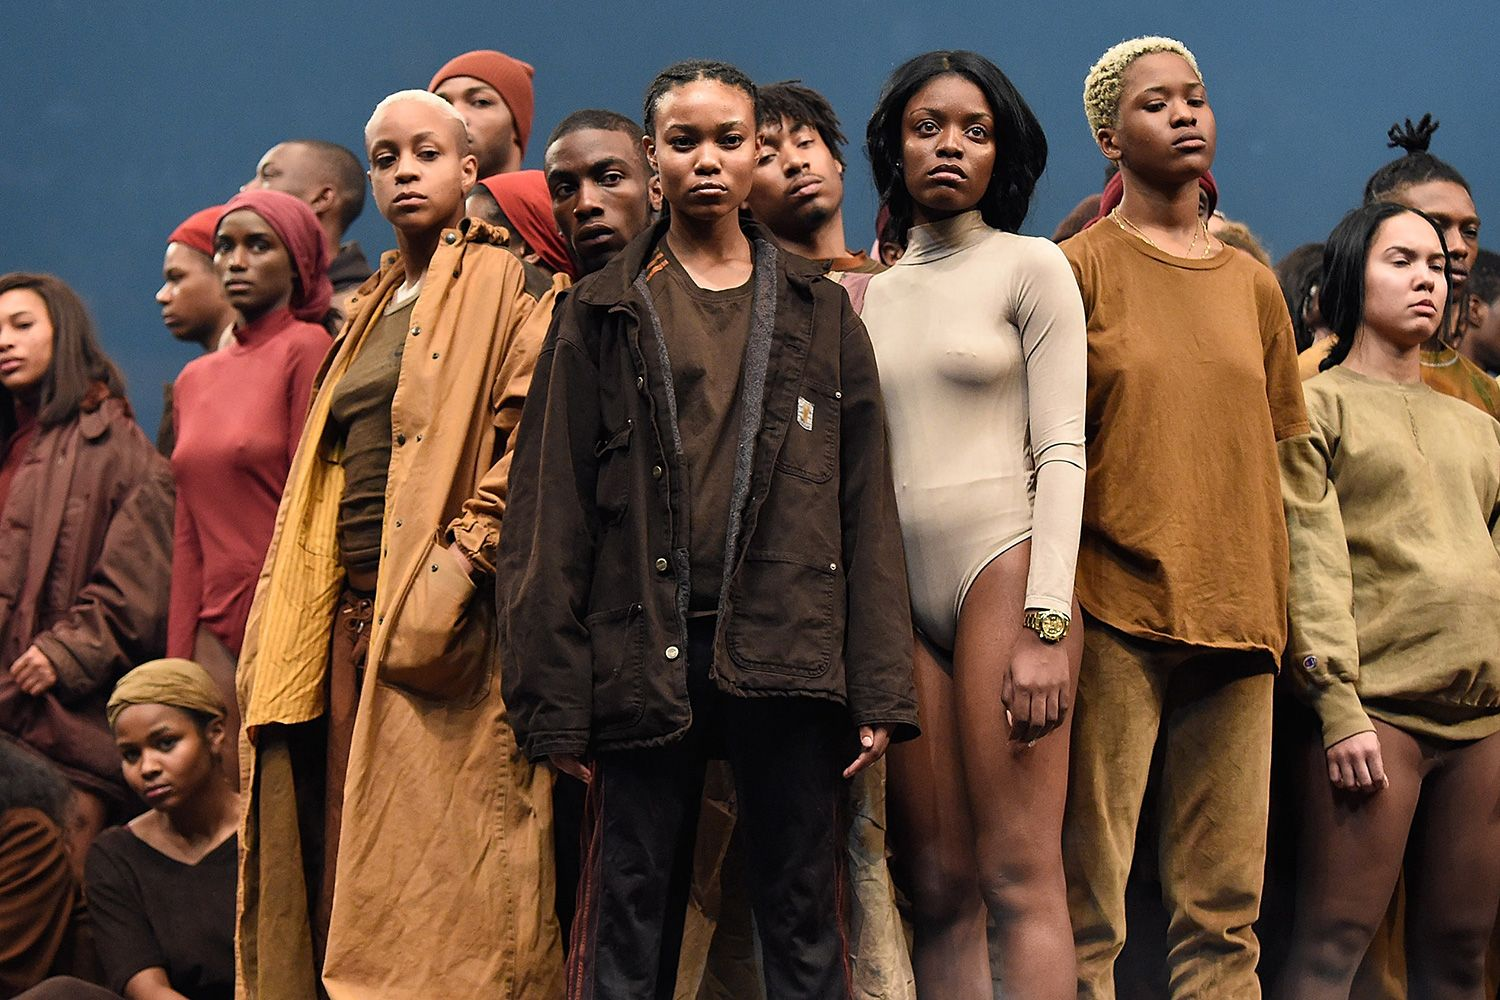 Kanye West Is Working On A New Album Yeezy Season Yeezy Season 3 Yeezy Fashion Show